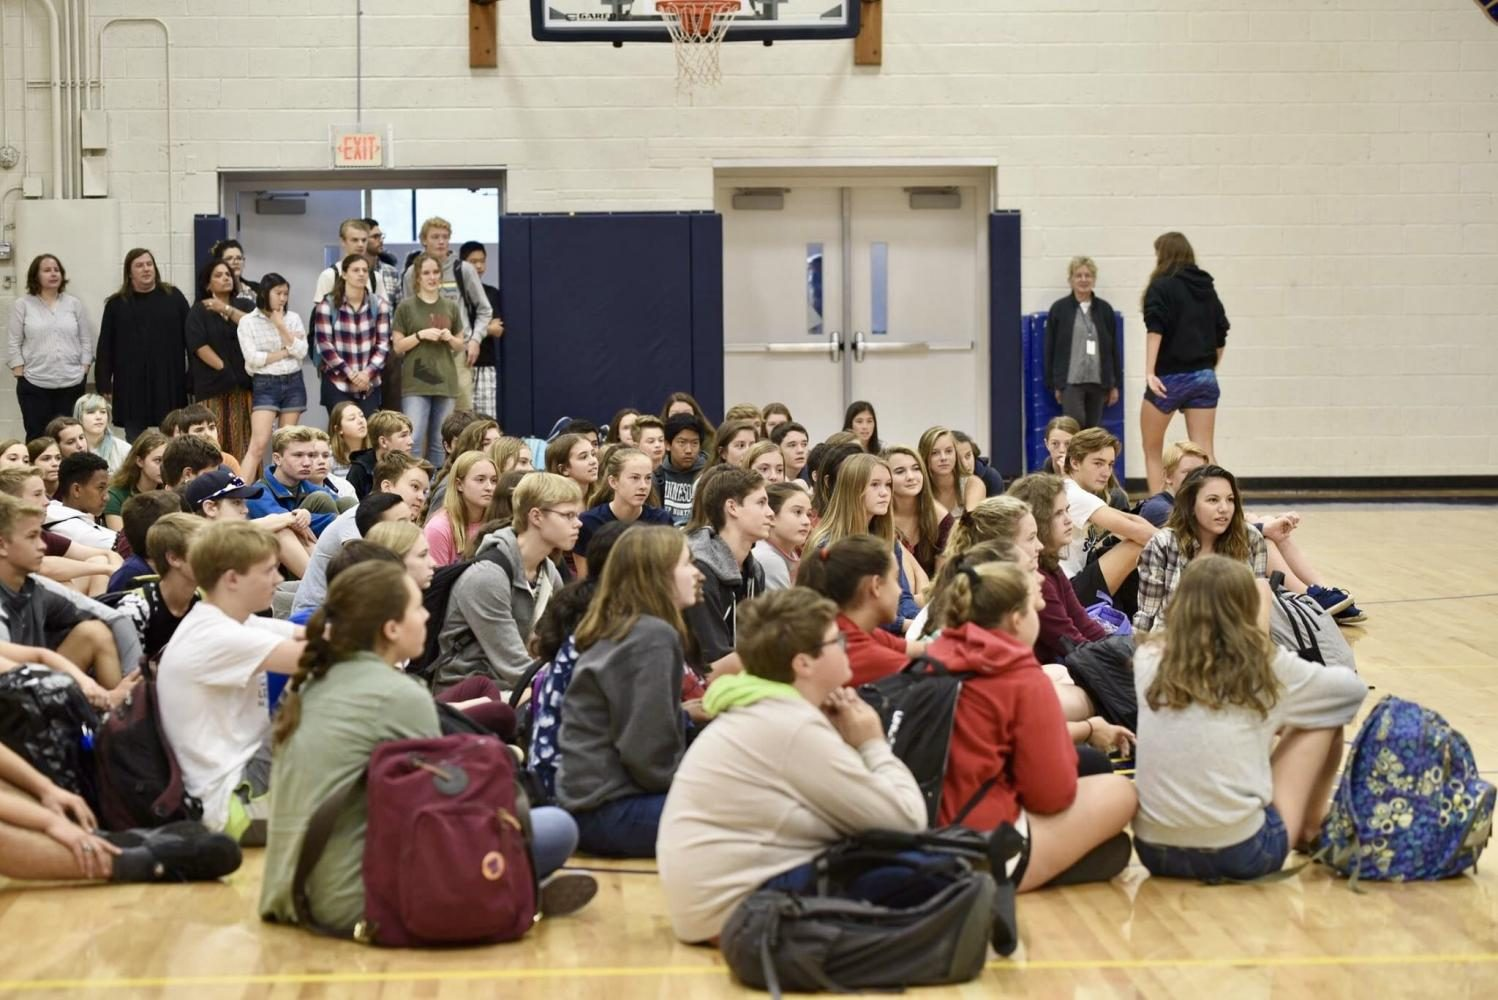 9th+graders+gathered+in+Briggs+Gymnasium+on+Sept.+11+for+the+US+Student+Clubs+Fair.